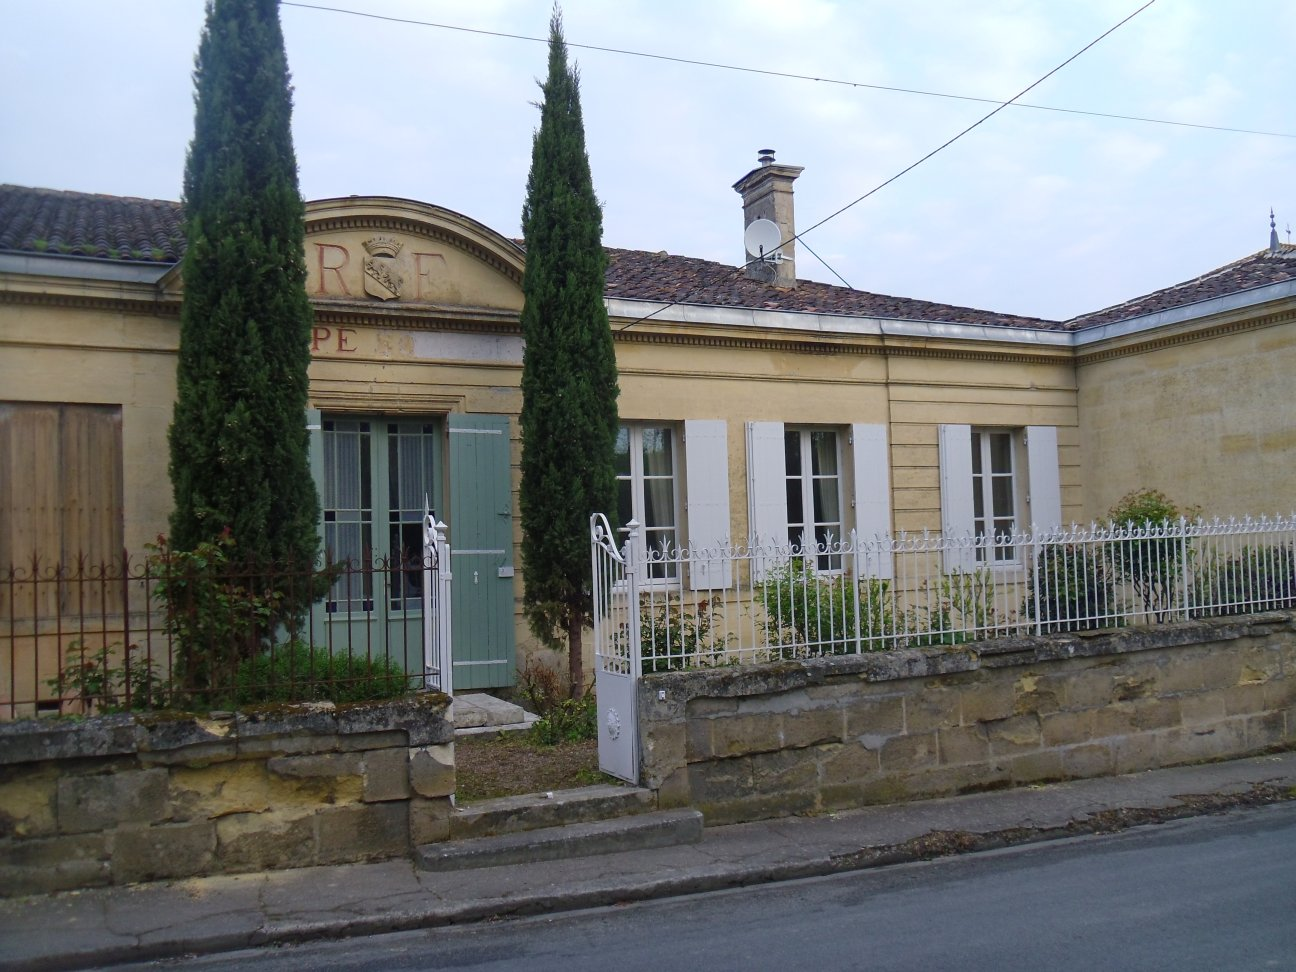 Gites france the old school house pujols nr st emilion for Updating an old house